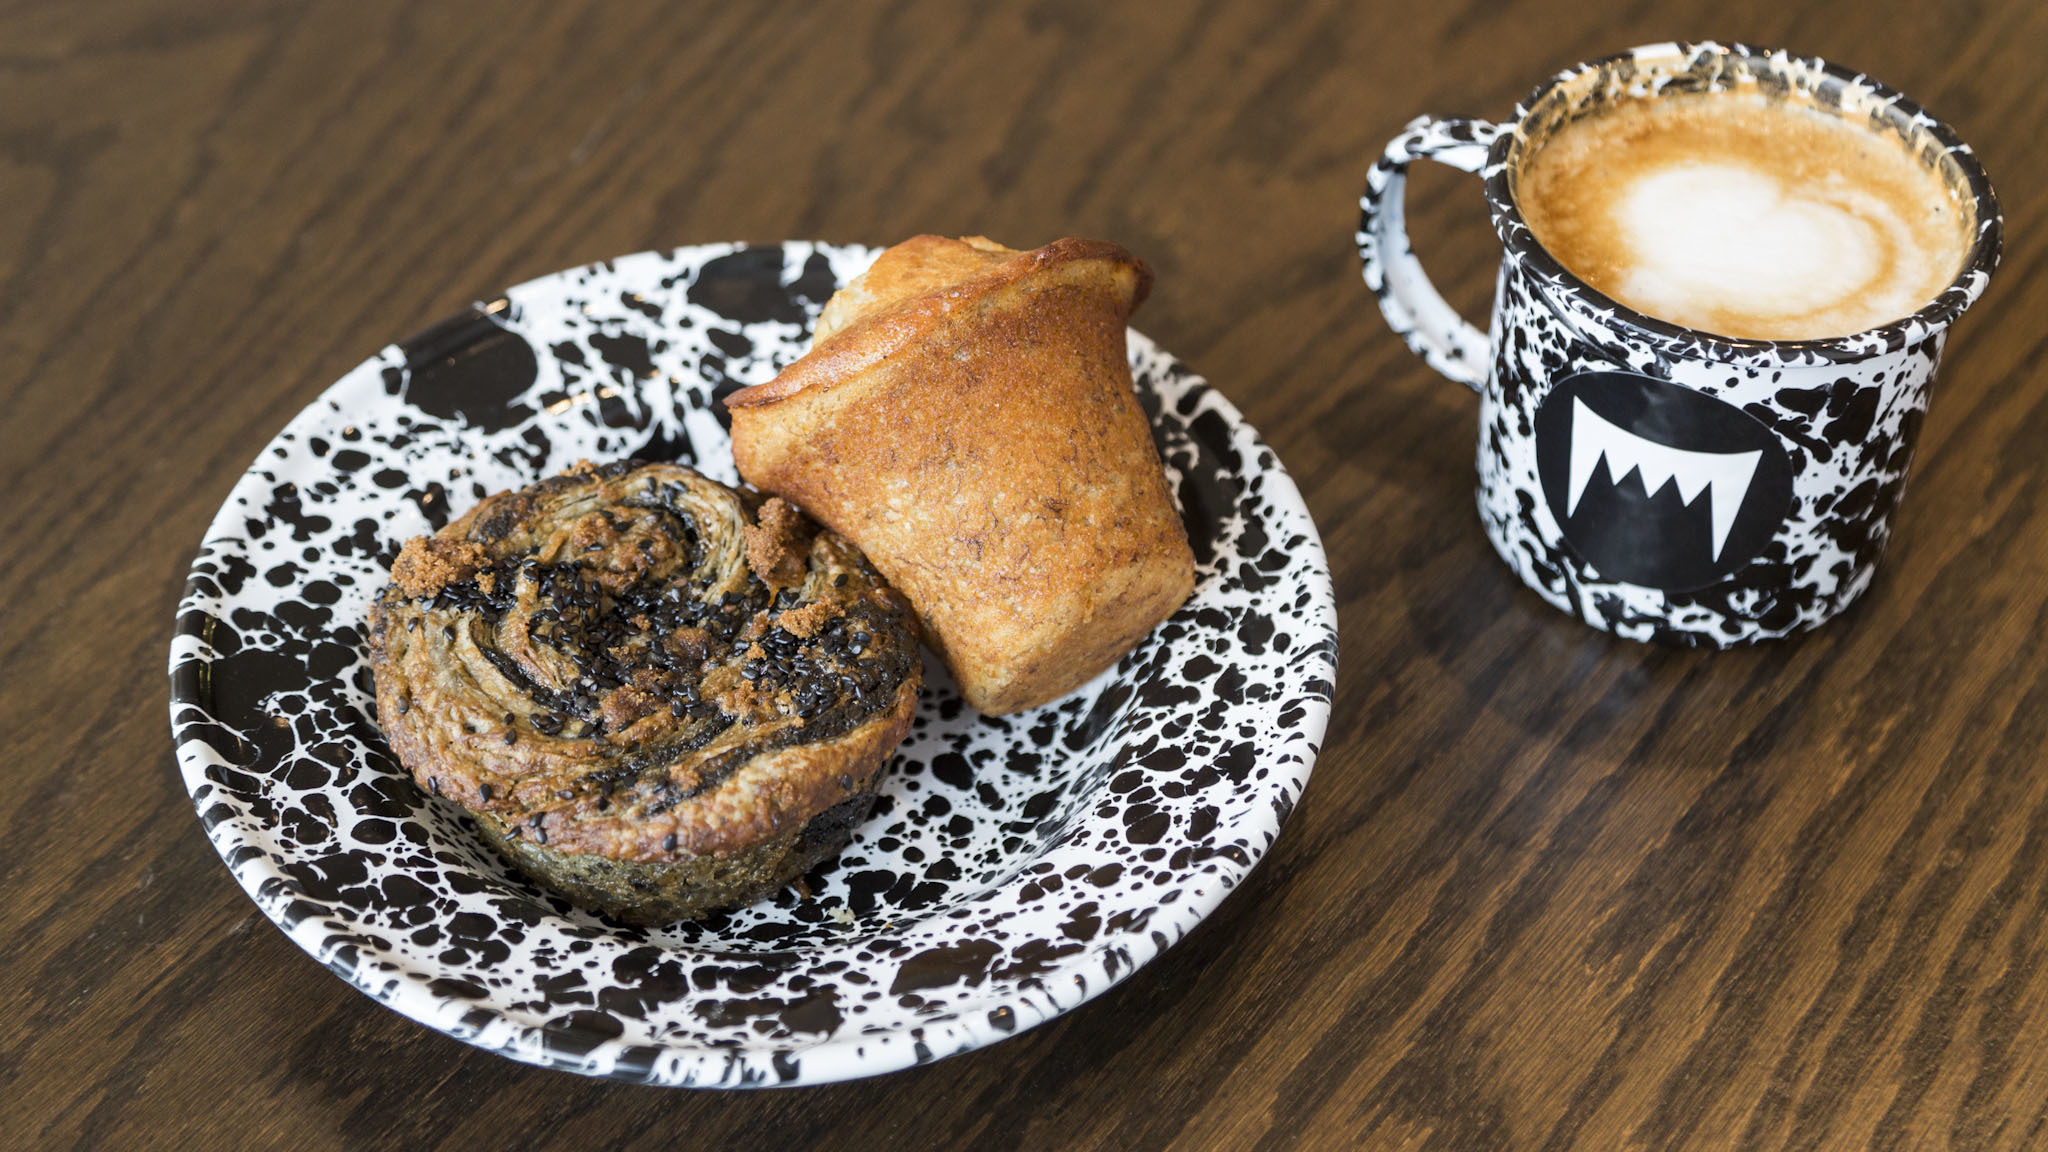 Loba Pastry + Coffee